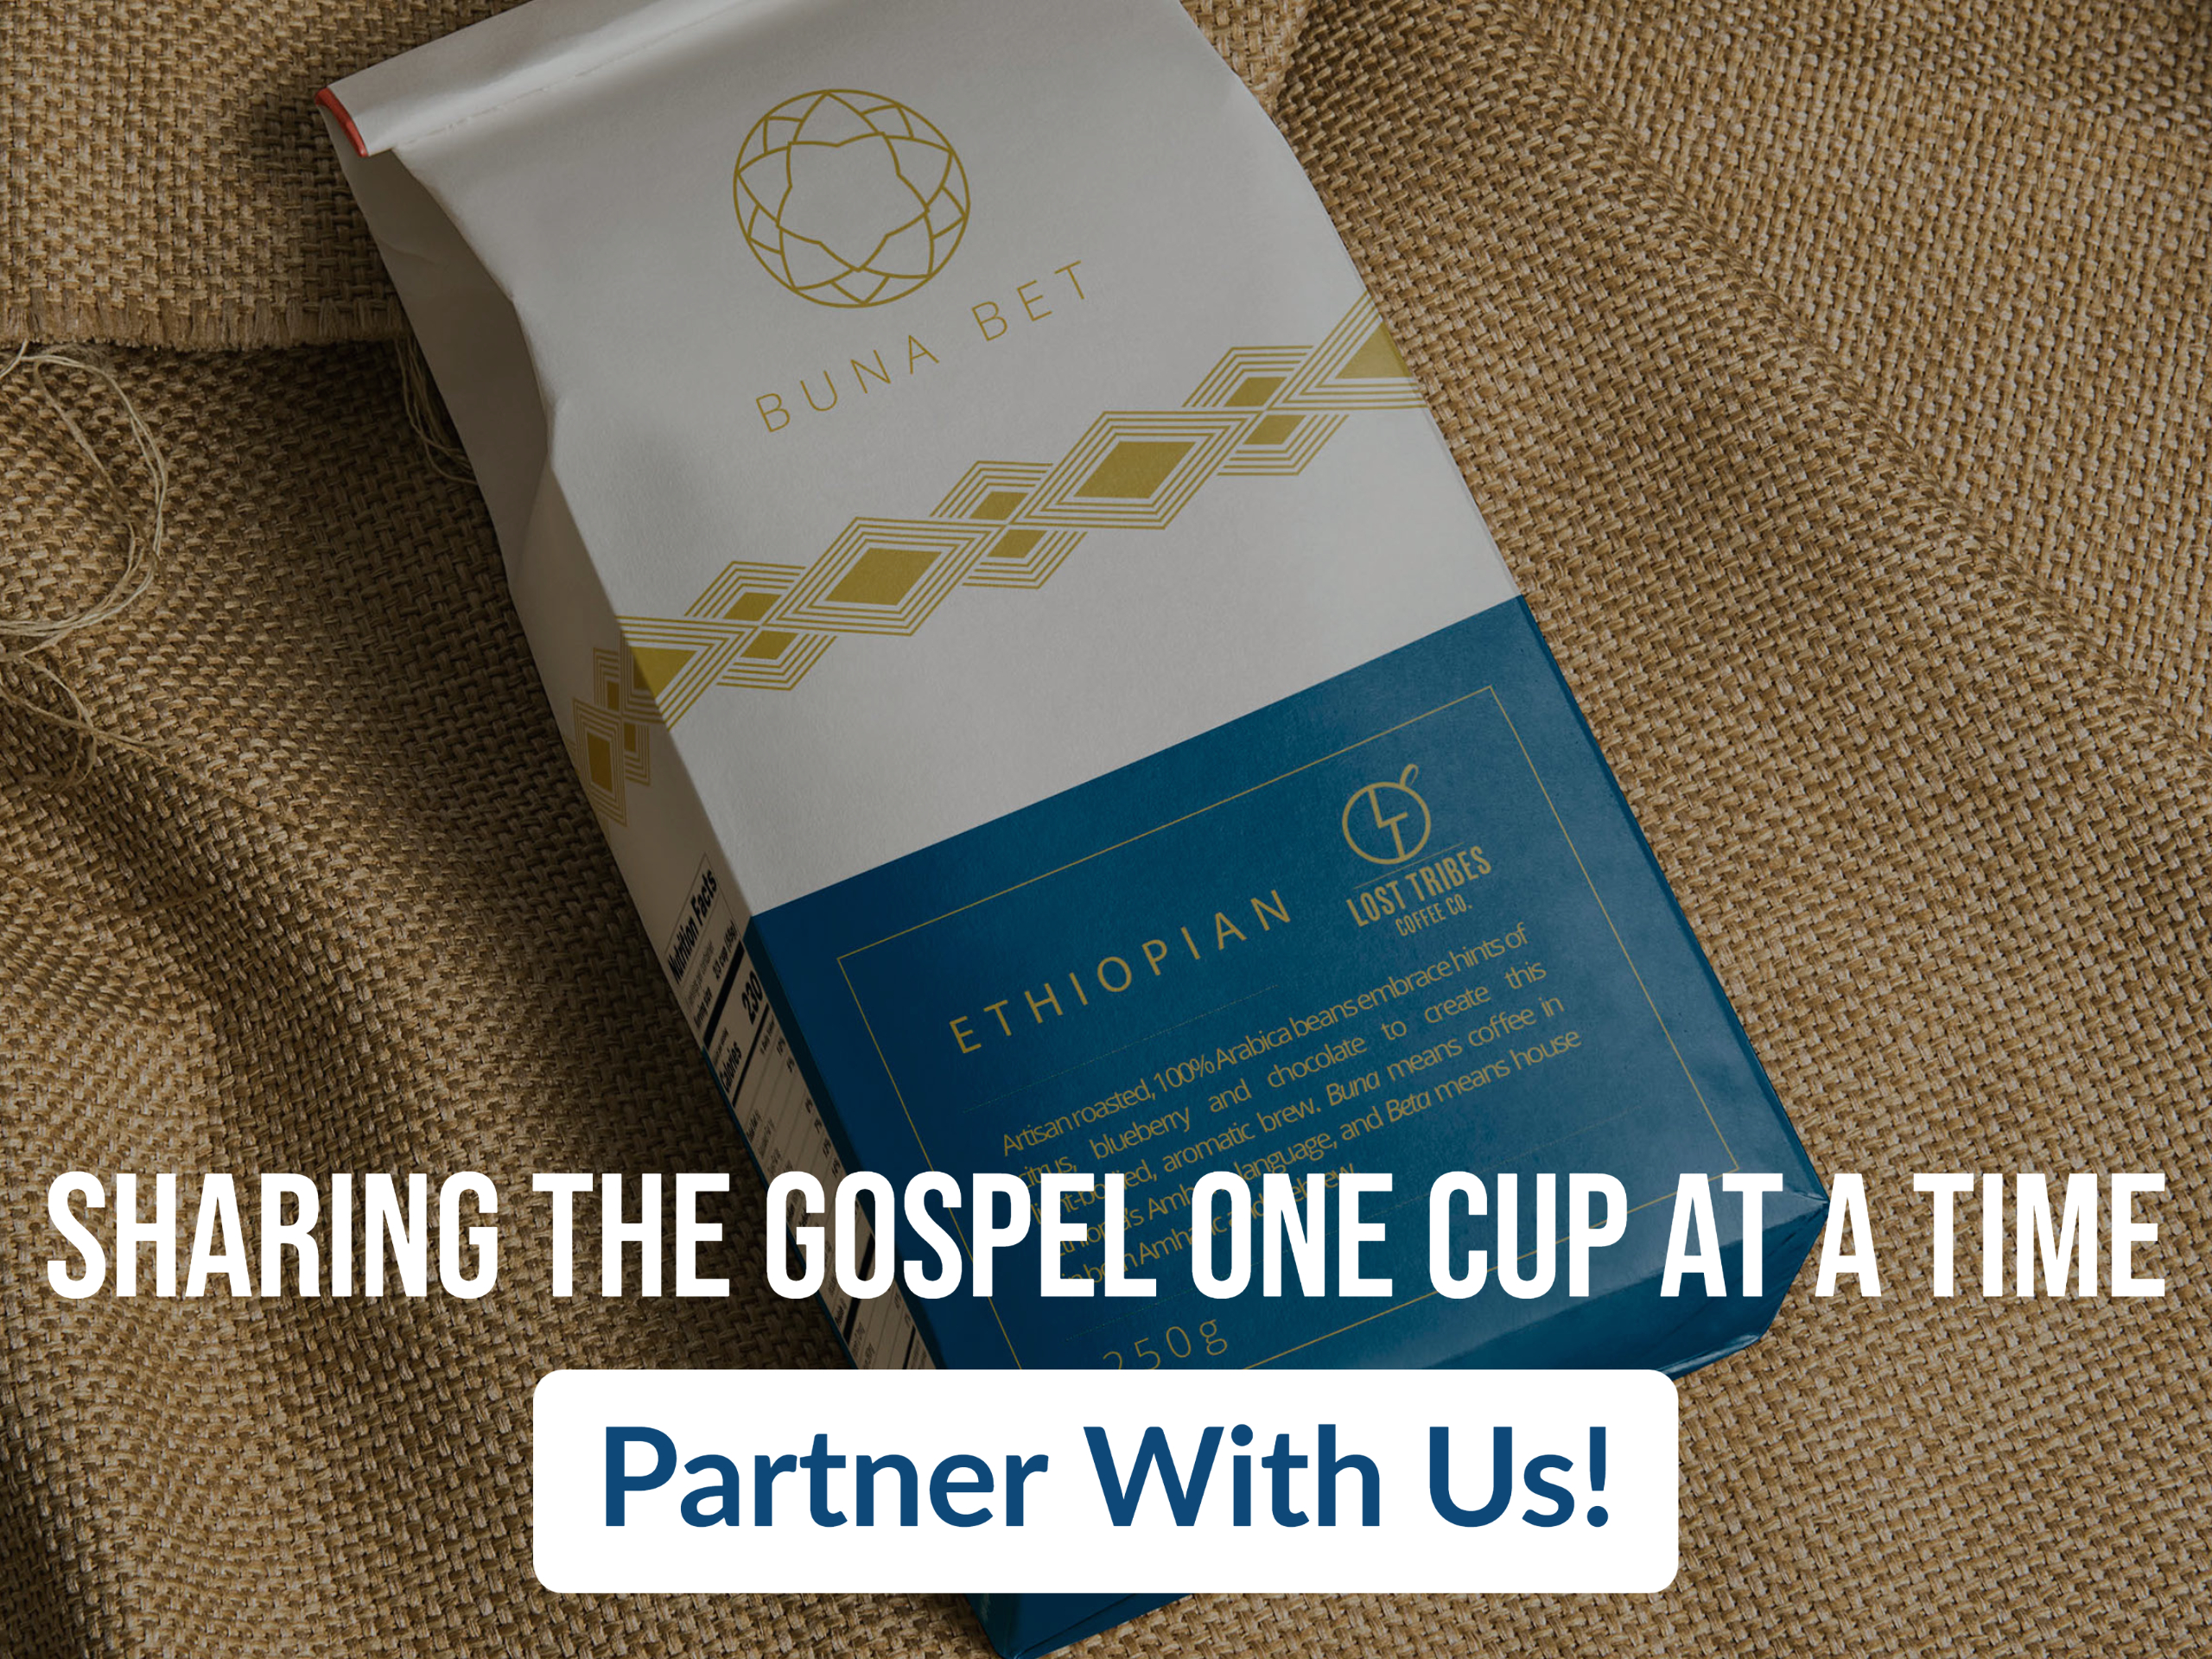 Sharing the Gospel - one cup at a time